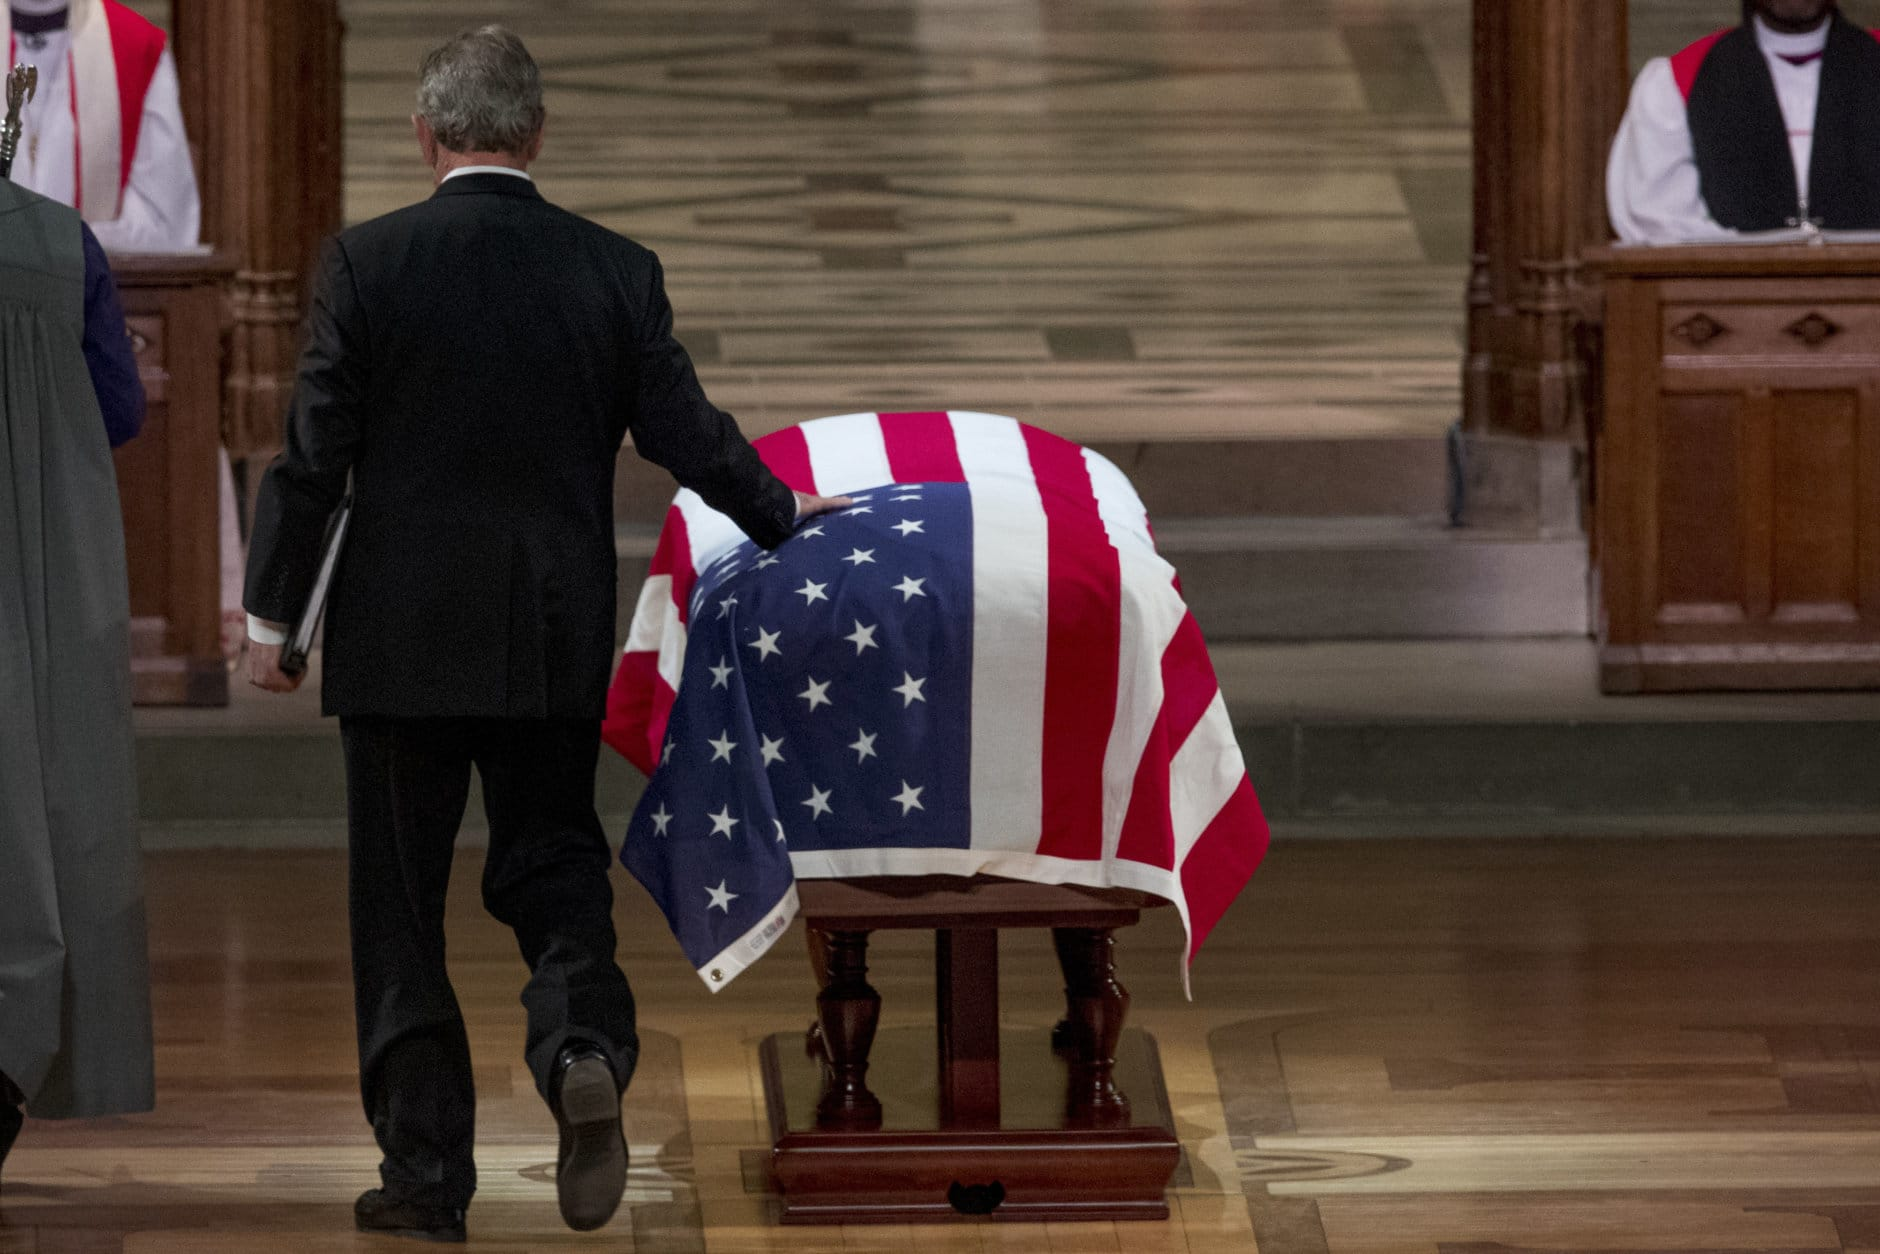 Former President George Bush touches the flag-draped casket of his father, former President George H.W. Bush, as he prepares to speak during his State Funeral at the National Cathedral, Wednesday, Dec. 5, 2018, in Washington. (AP Photo/Andrew Harnik, Pool)